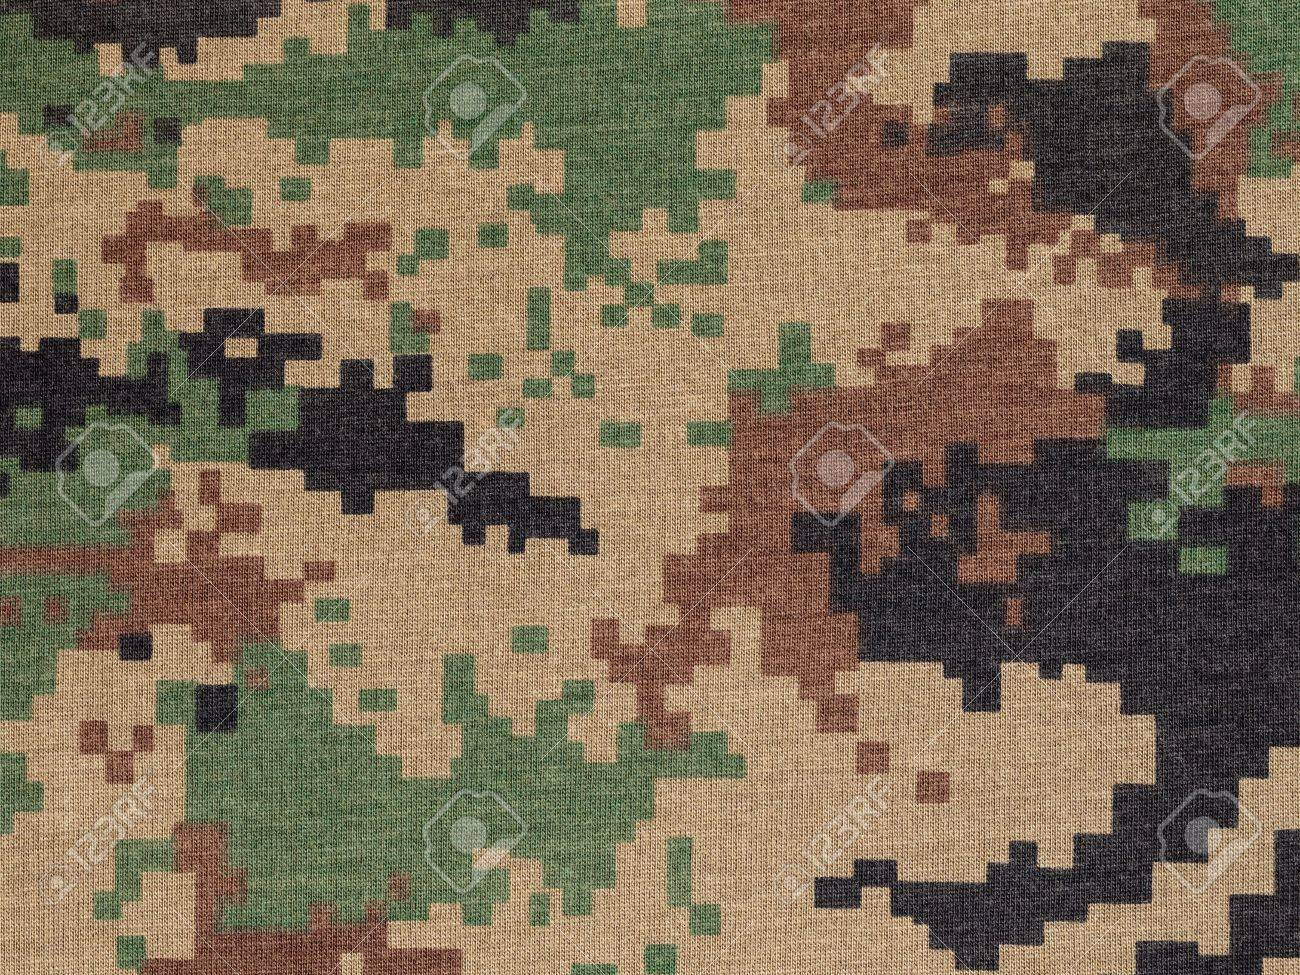 buy online 2018 sneakers free delivery Royal thai marine digital woodland camouflage fabric texture..